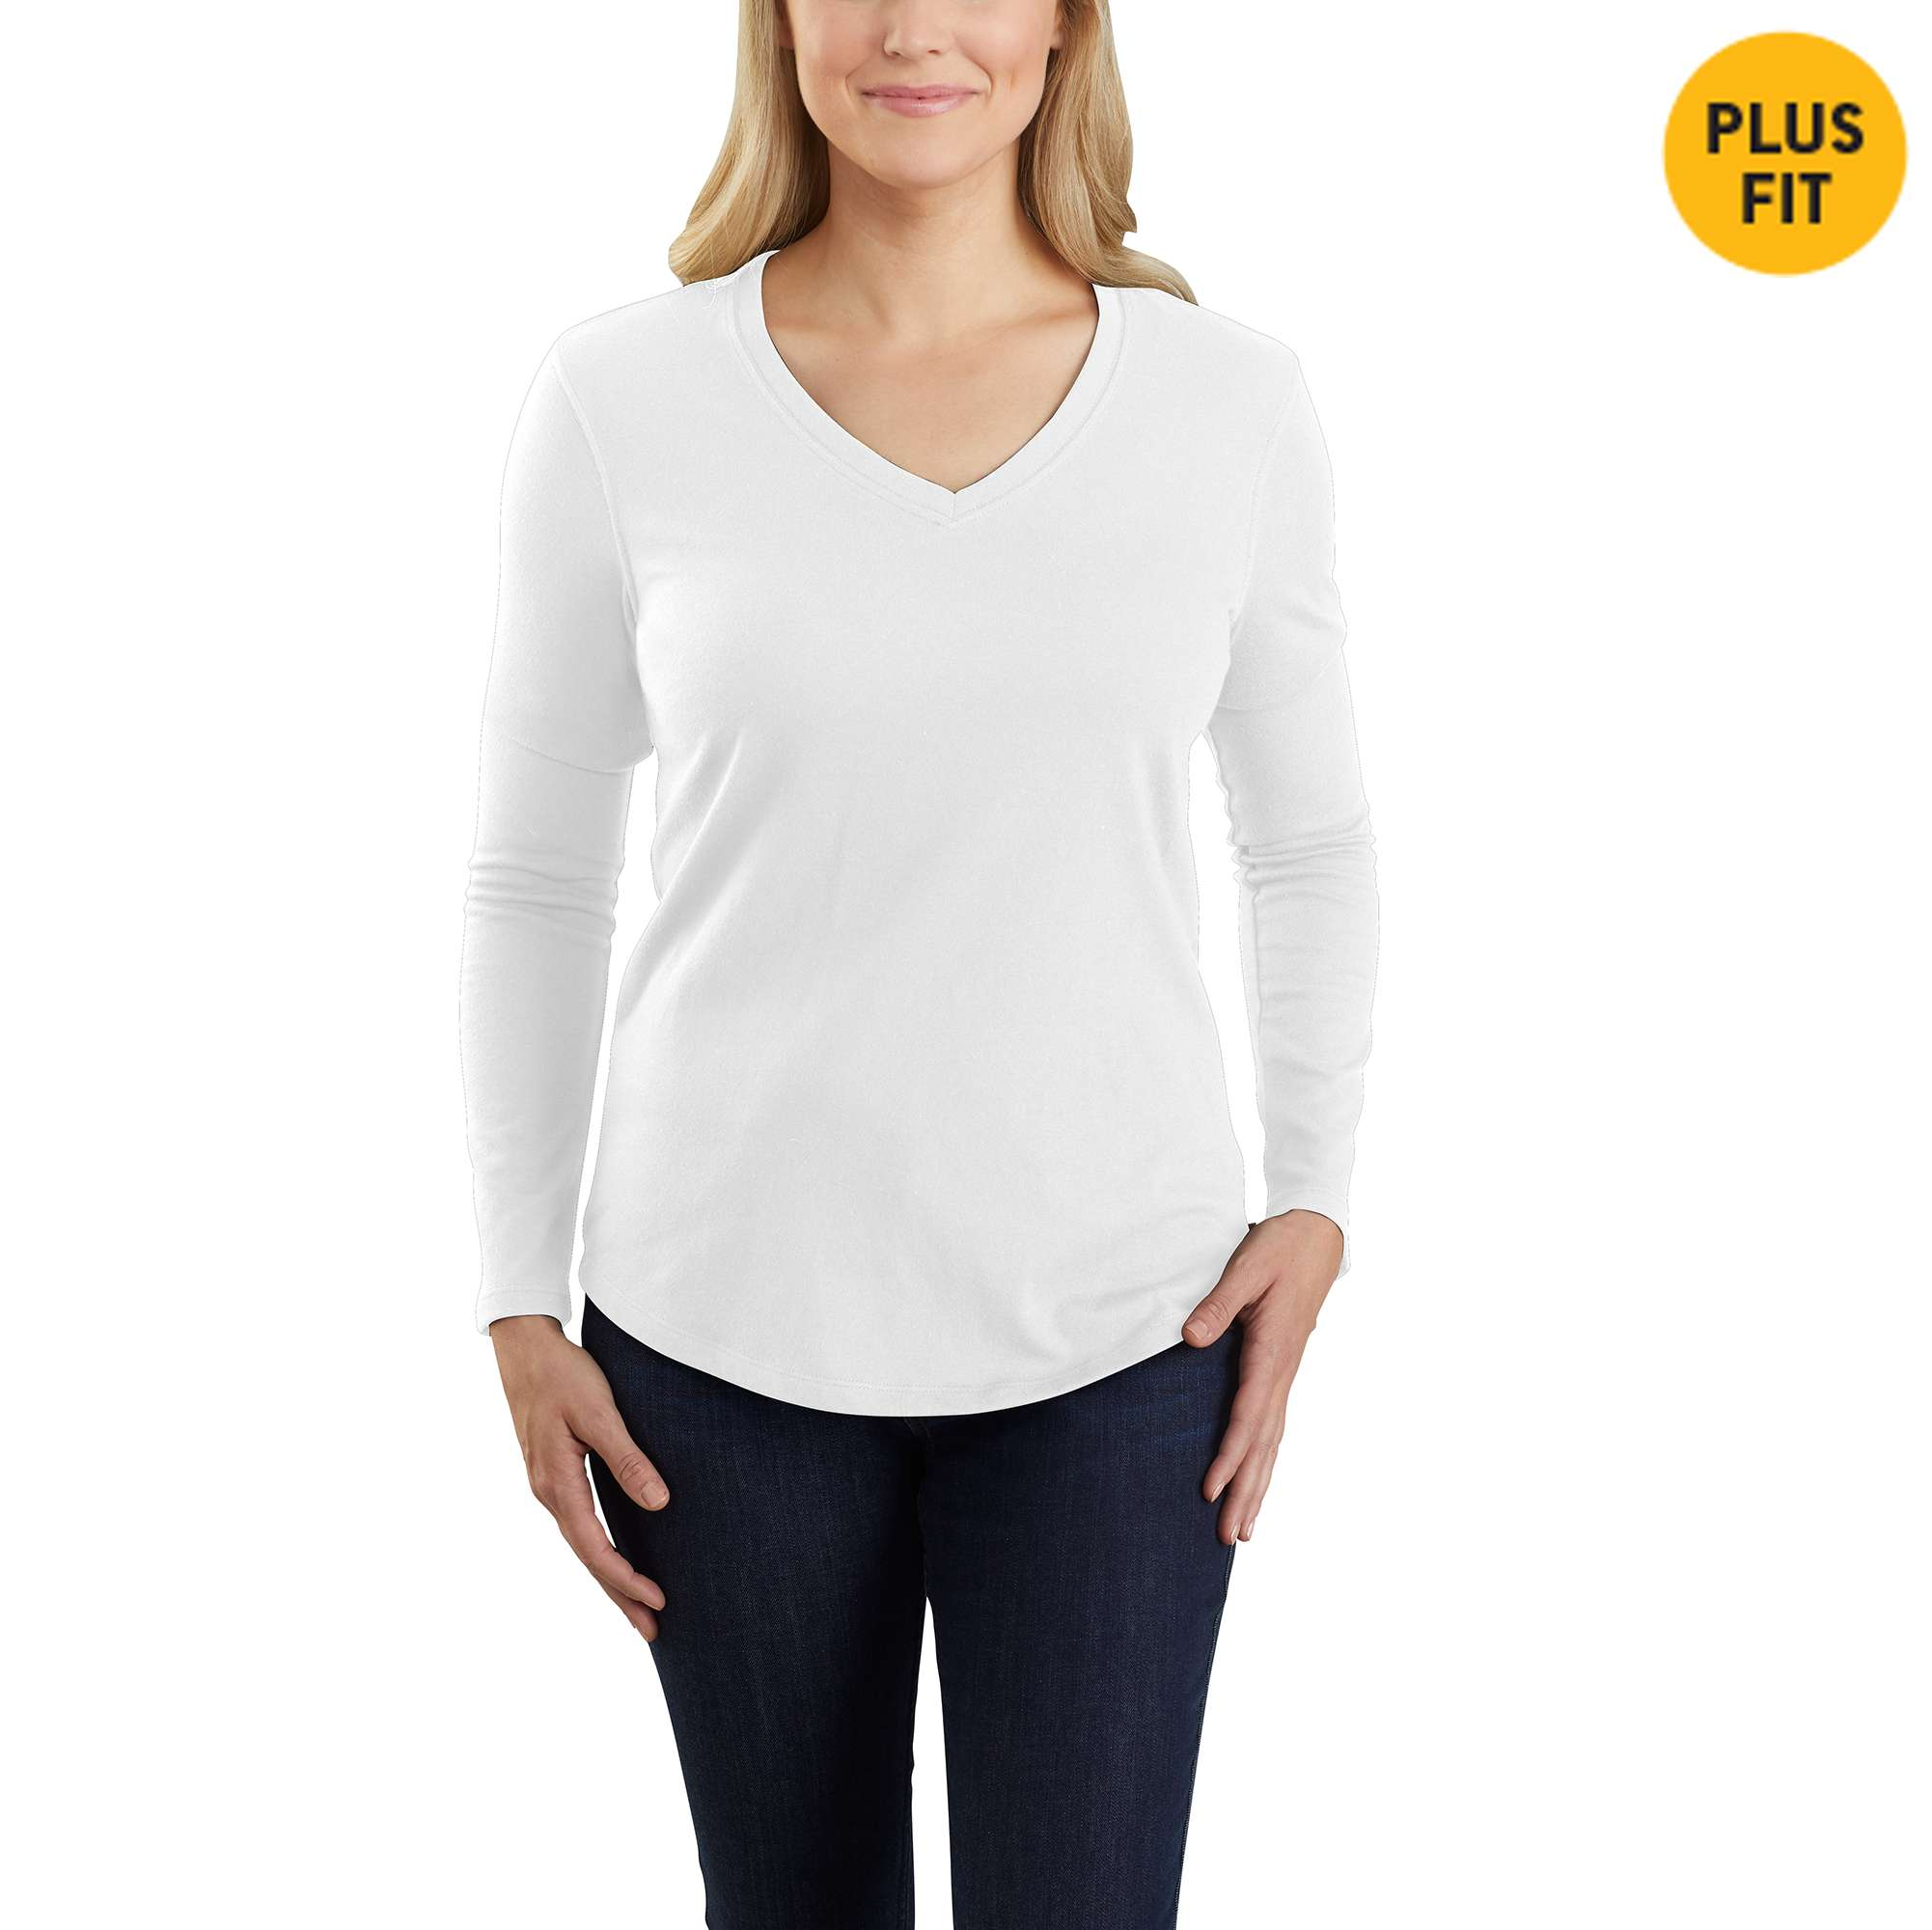 Carhartt Relaxed Fit Midweight Long Sleeve V neck T-Shirt